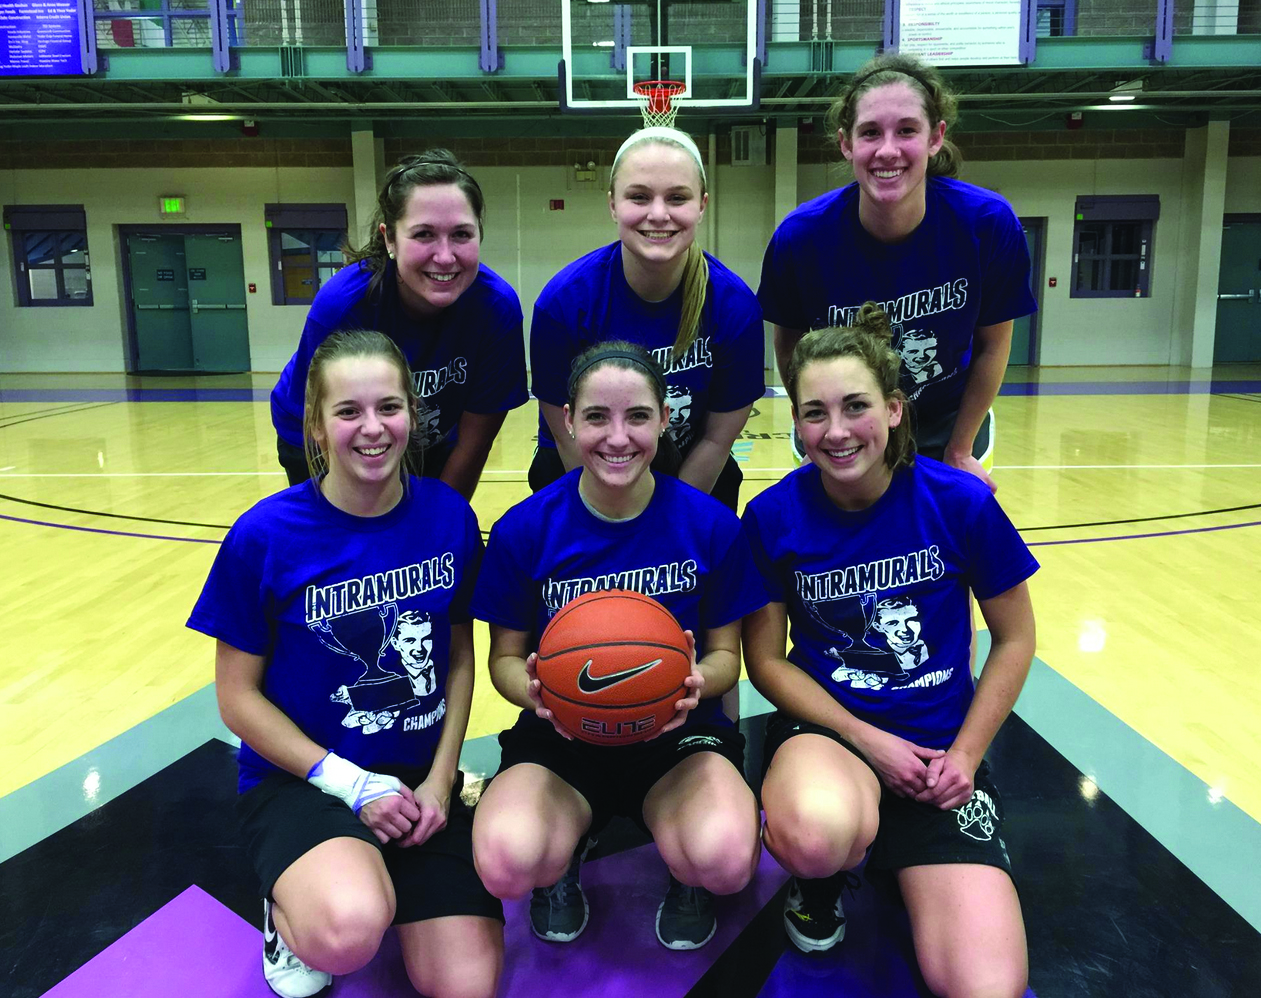 """The six players of the intramural basketball team """"Short Stack"""" pose for a picture in the RFC. They are wearing Goshen Intramural T-shirts, and one of them is holding a basketball"""